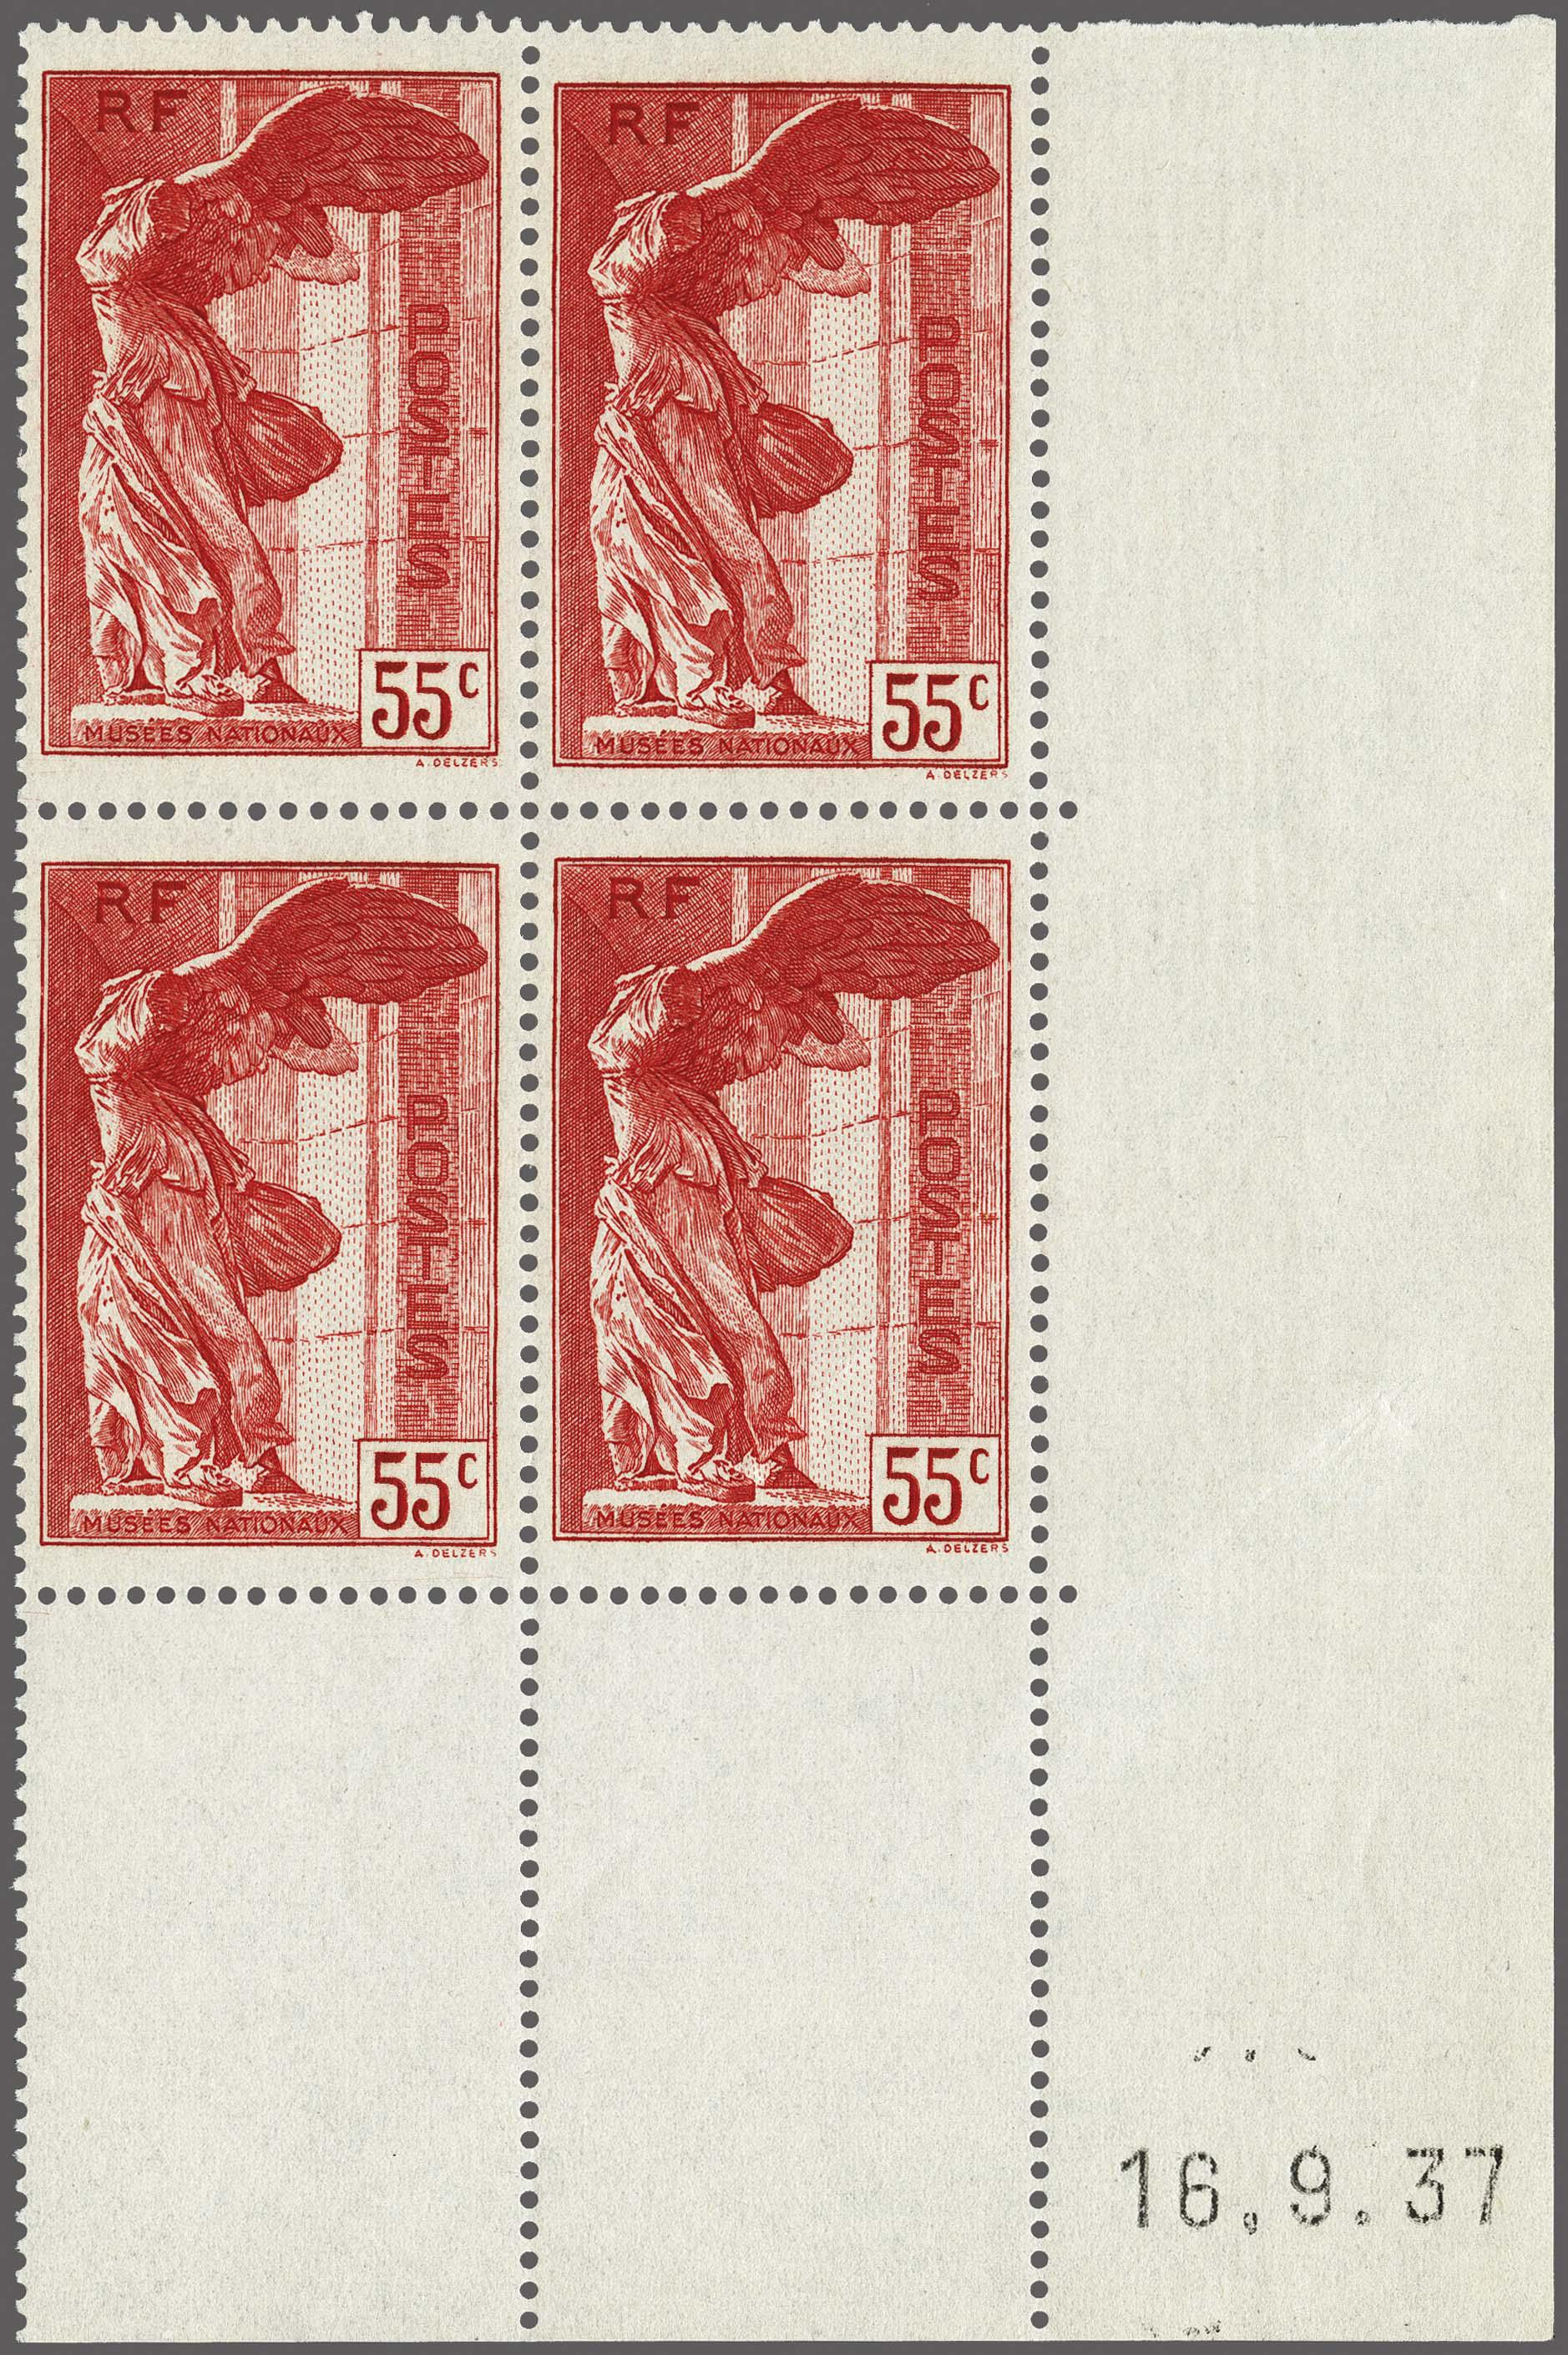 Lot 100 - France and former colonies France -  Corinphila Veilingen Auction 250-253 - Day 1 - Foreign countries